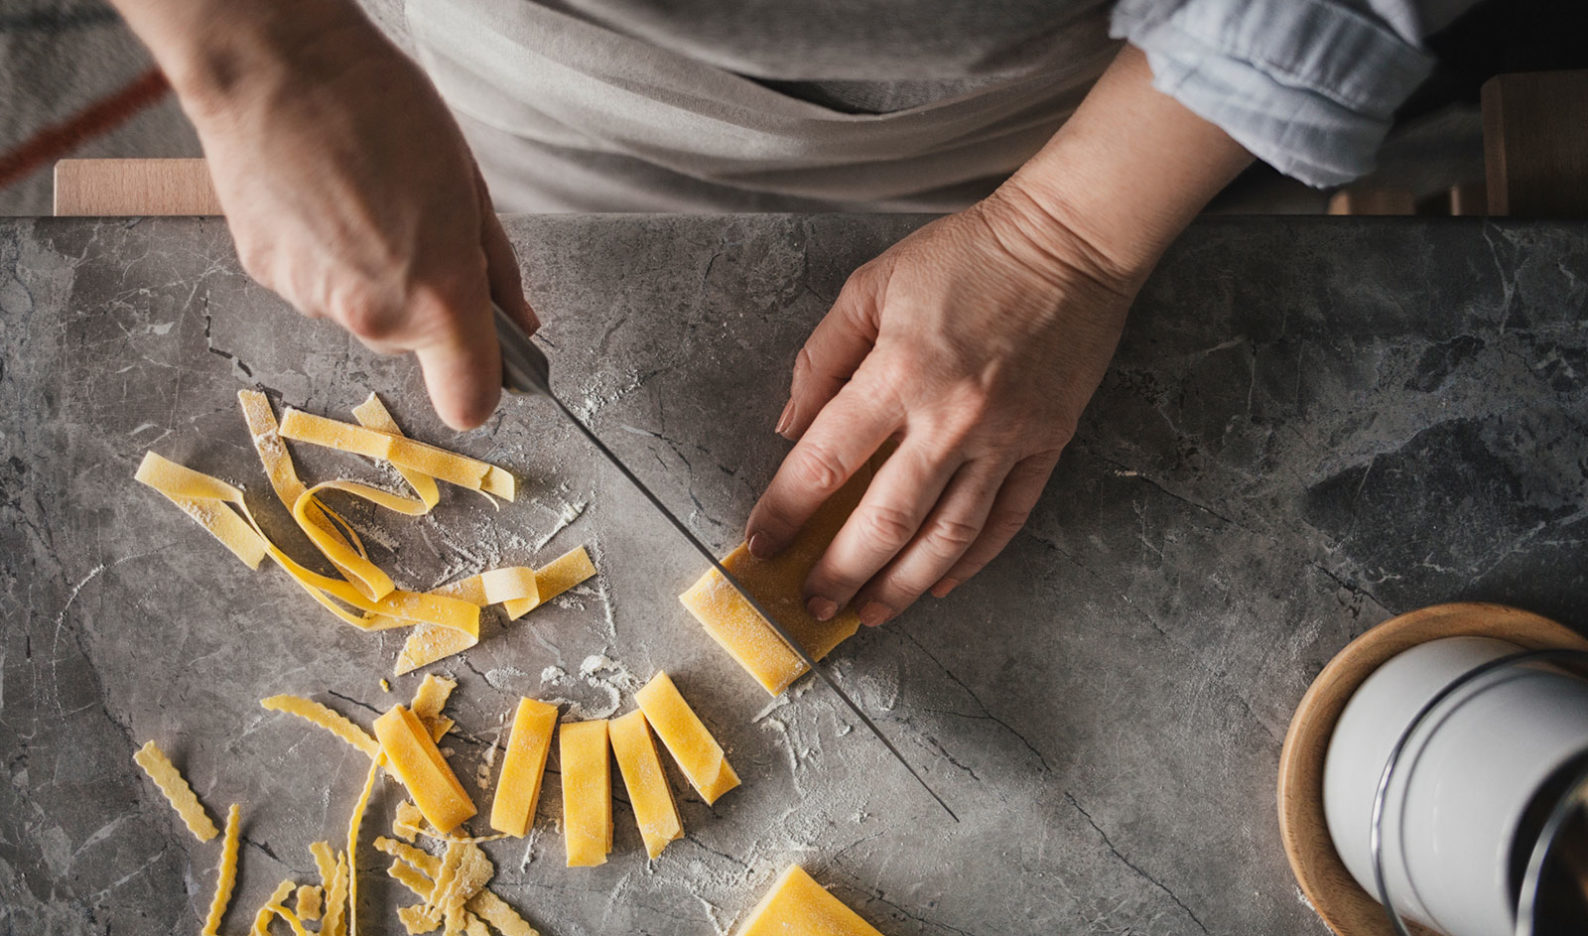 A chef cutting fresh pasta